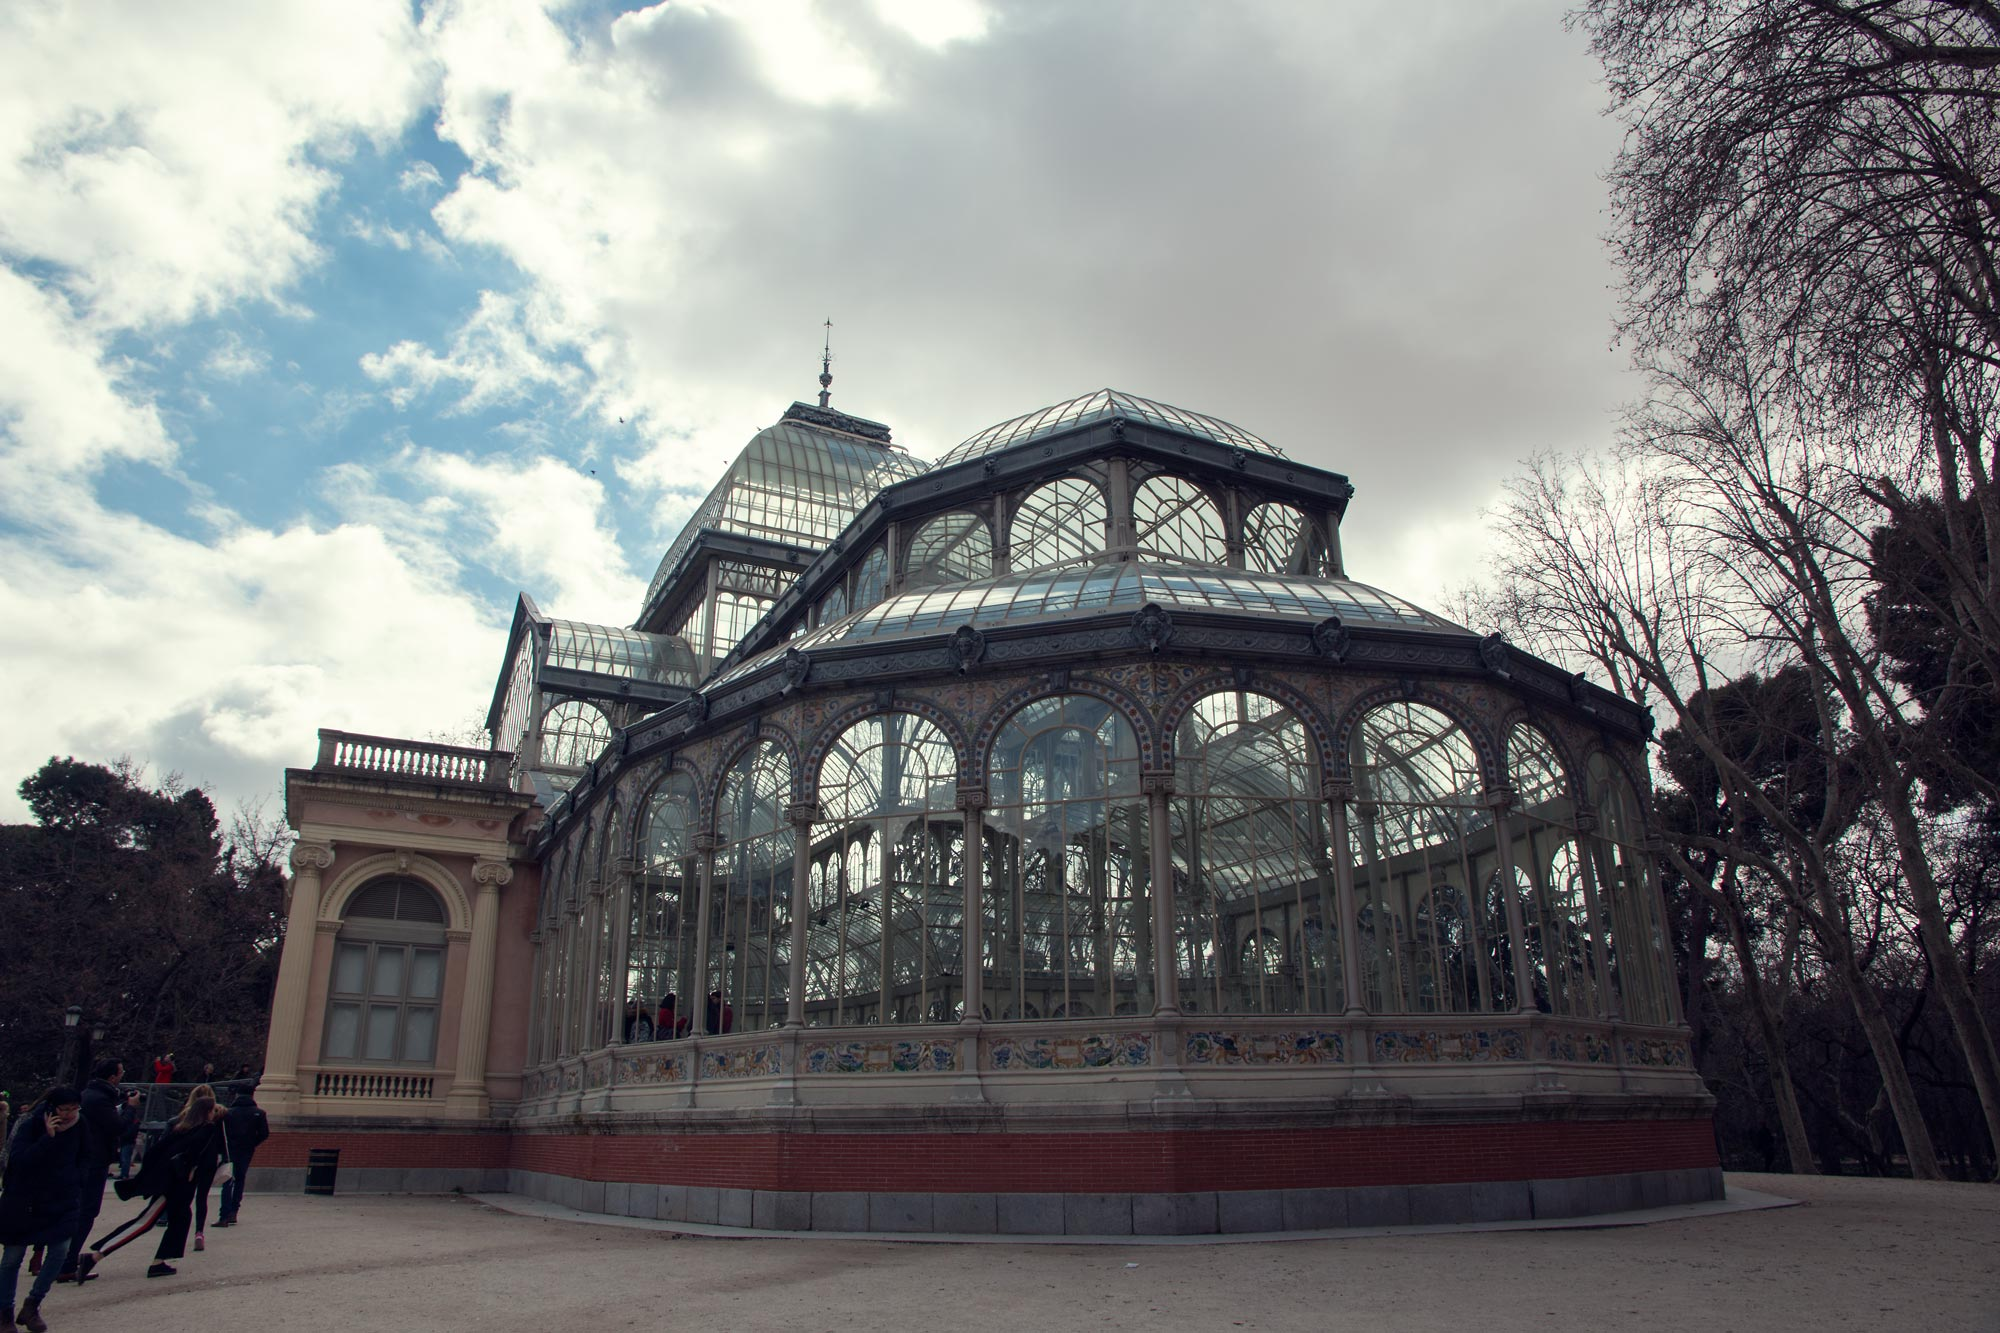 Madrid's Crystal Palace in Buen Retiro Park.